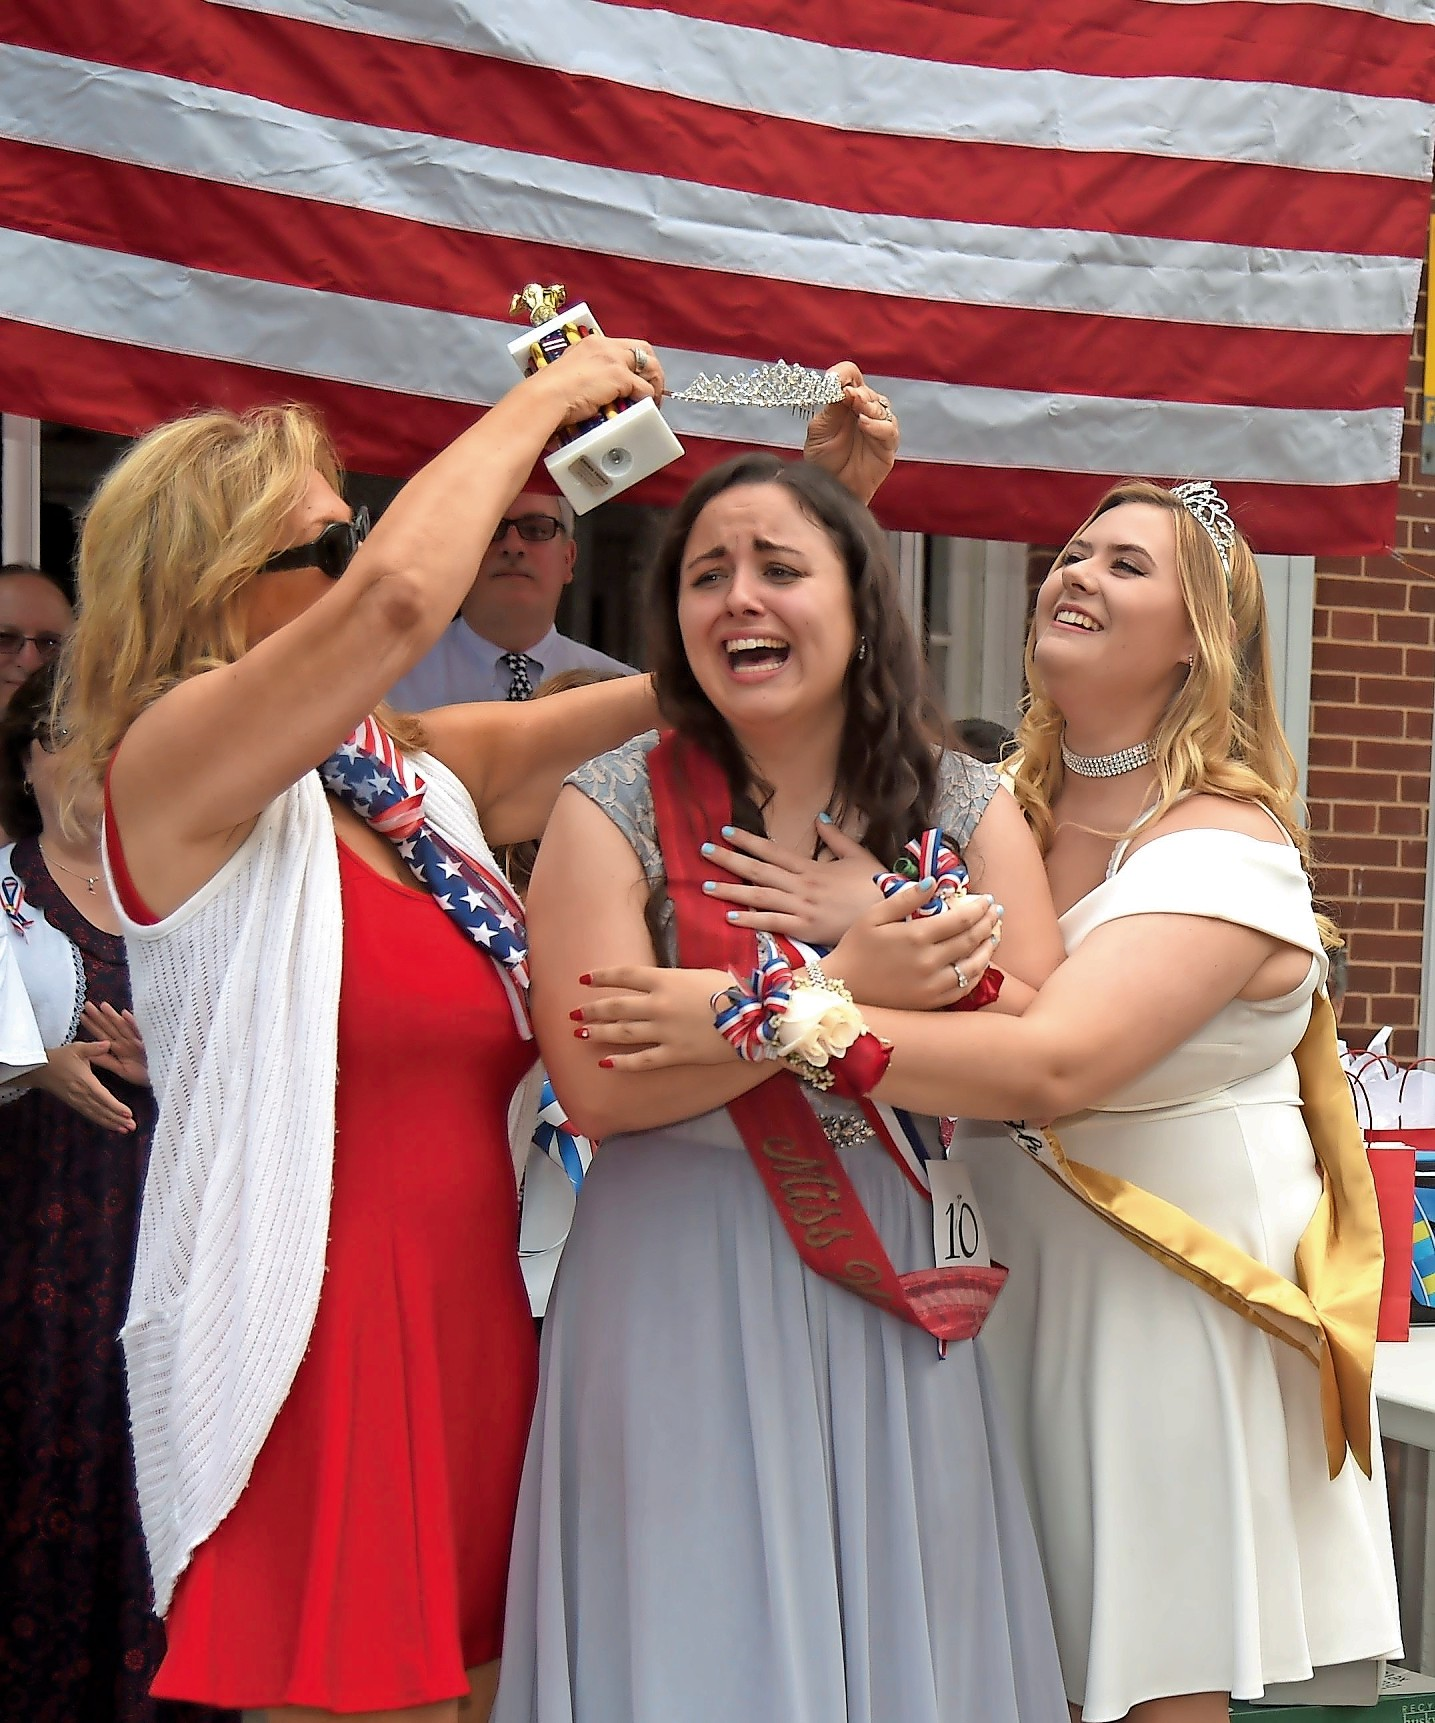 Samantha Walsh was crowned Miss Wantagh at Wantagh Elementary School on July 4. Former Miss Wantagh Emma Carey, right, and Director Ella Stevens embraced her.